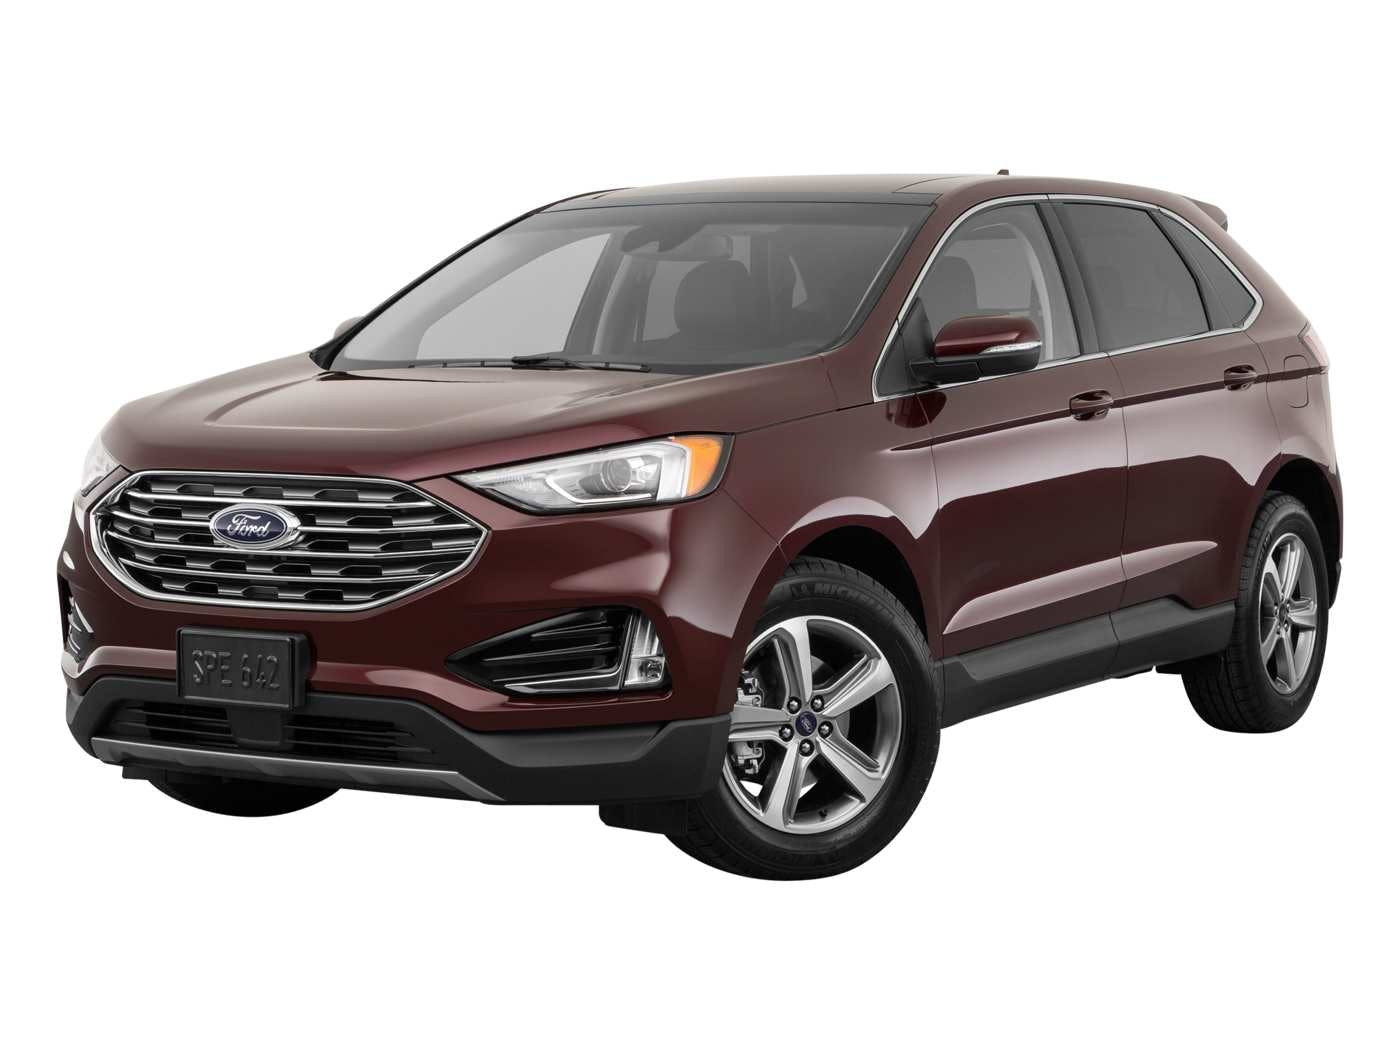 Ford Edge Exterior Front Angle View